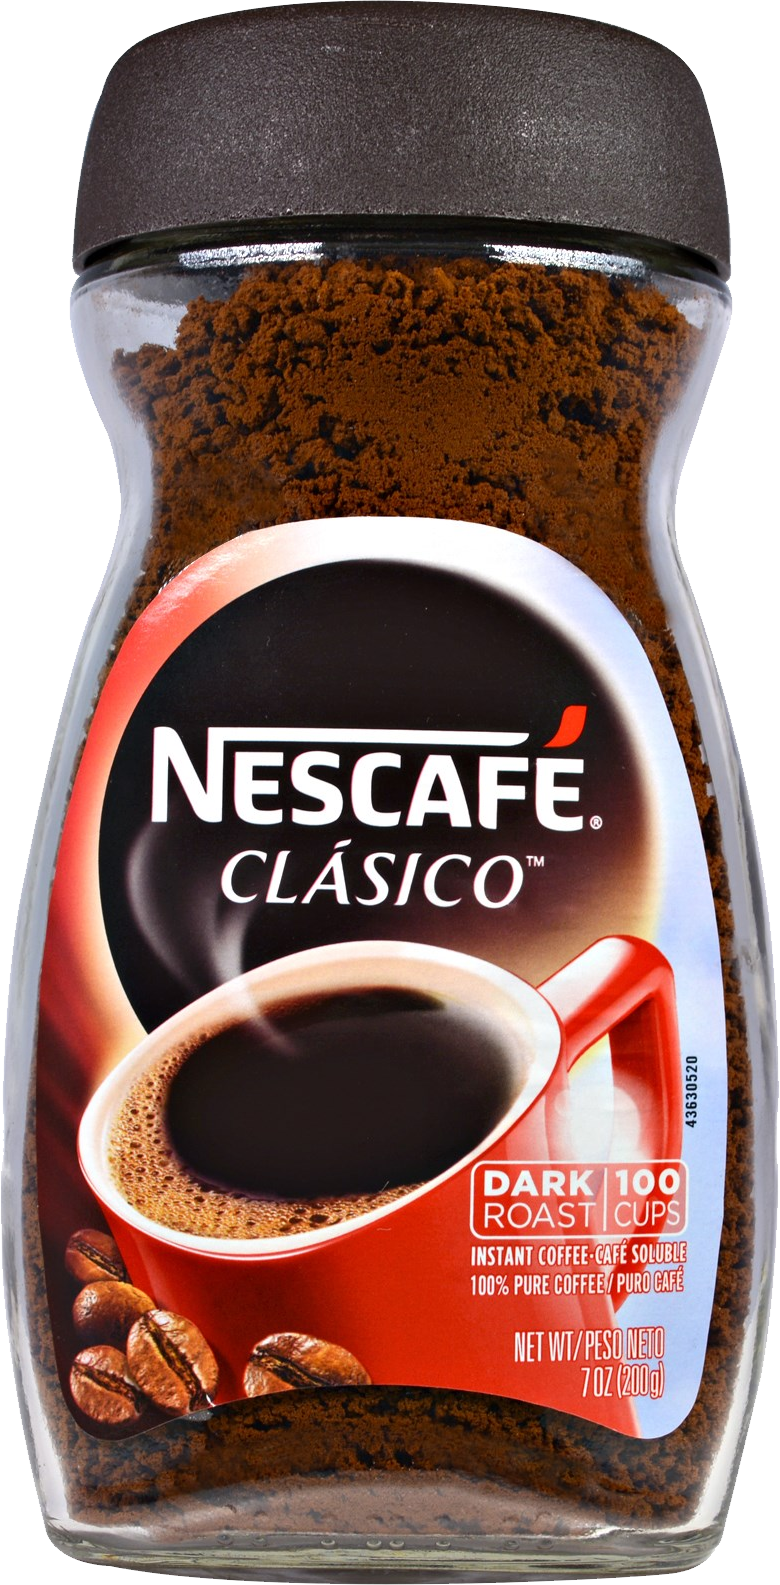 how to open a jar of nescafe